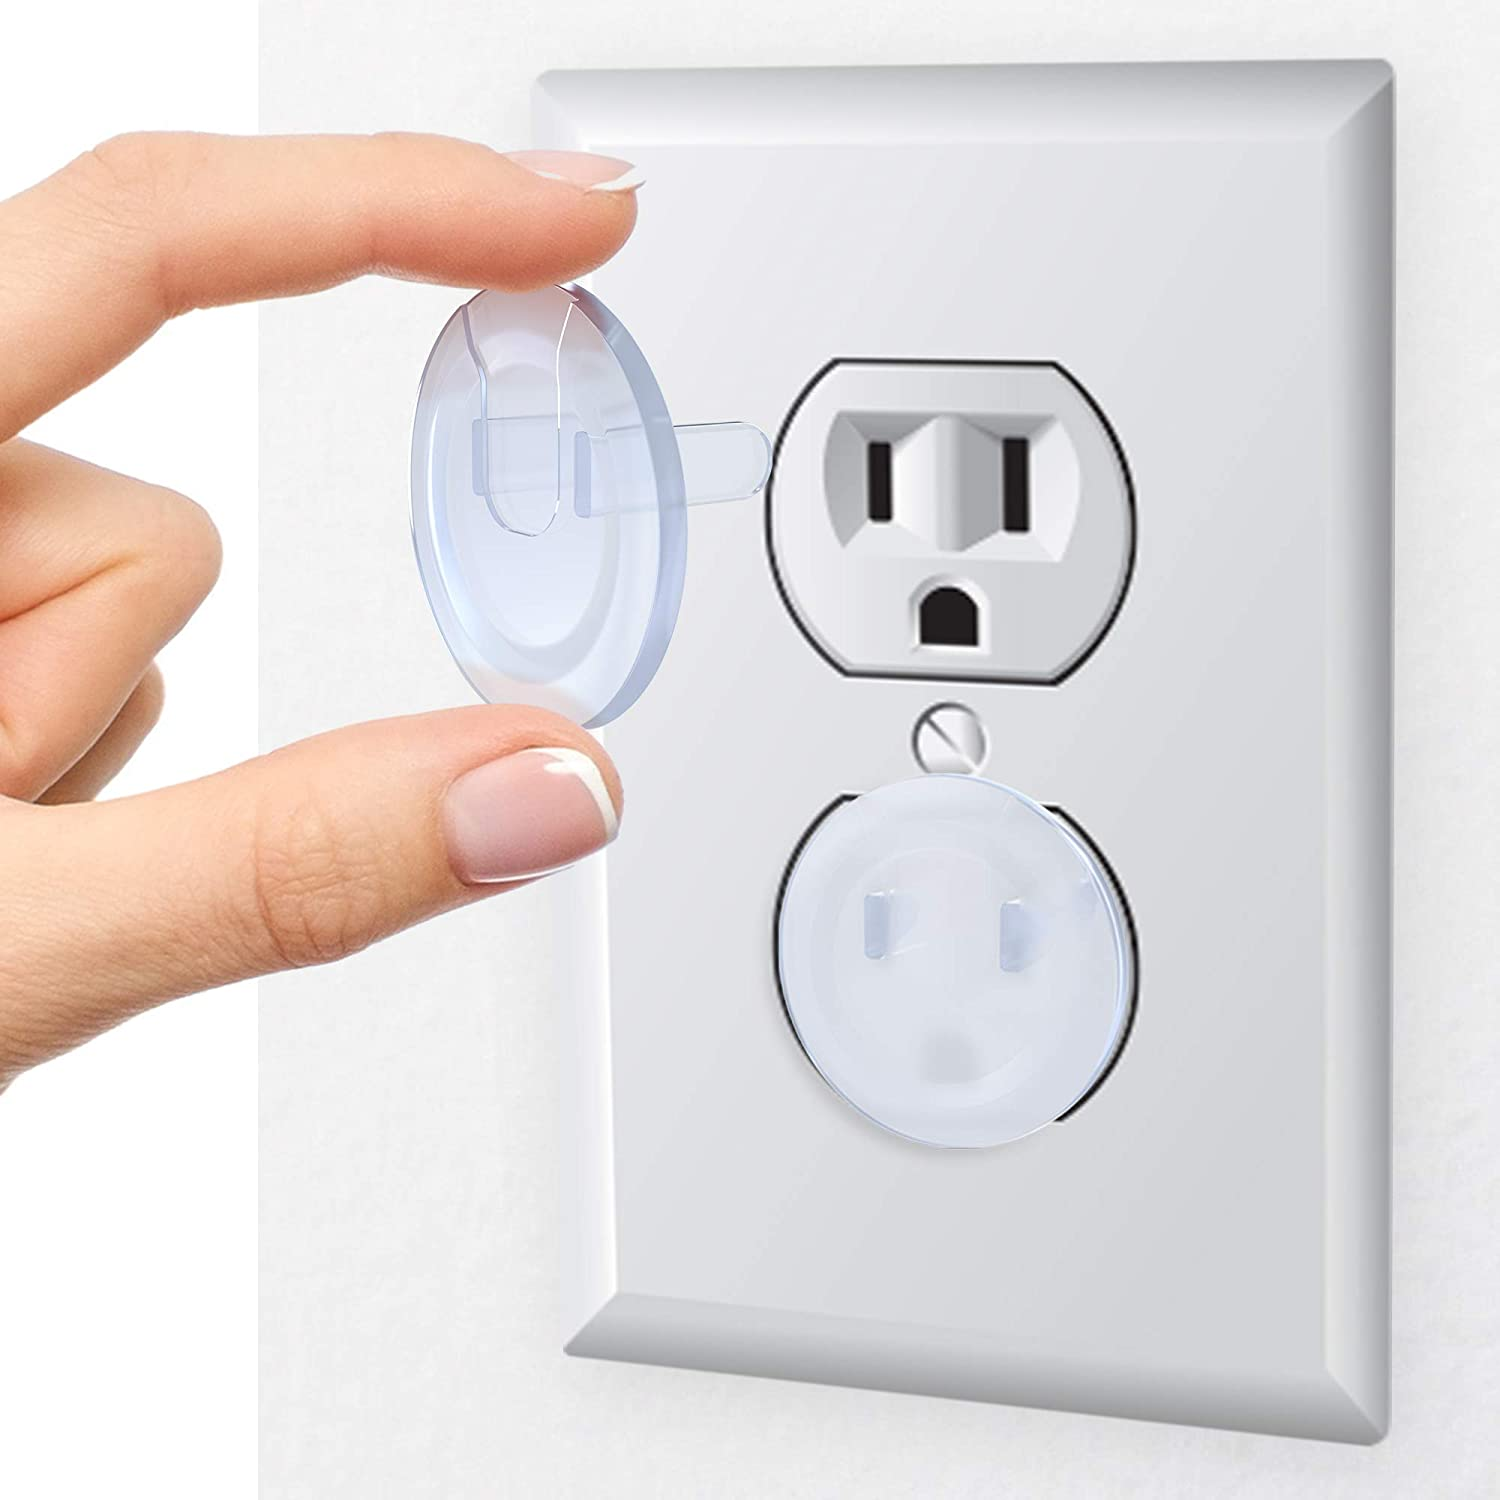 Skyla Homes - Clear Outlet Covers (36-Pack), Best Dielectric Plastic Plugs for Electrical Power Outlets - Baby Proofing Wall Socket Protectors, Child Proof Oulet Protector - Electricity Insulation